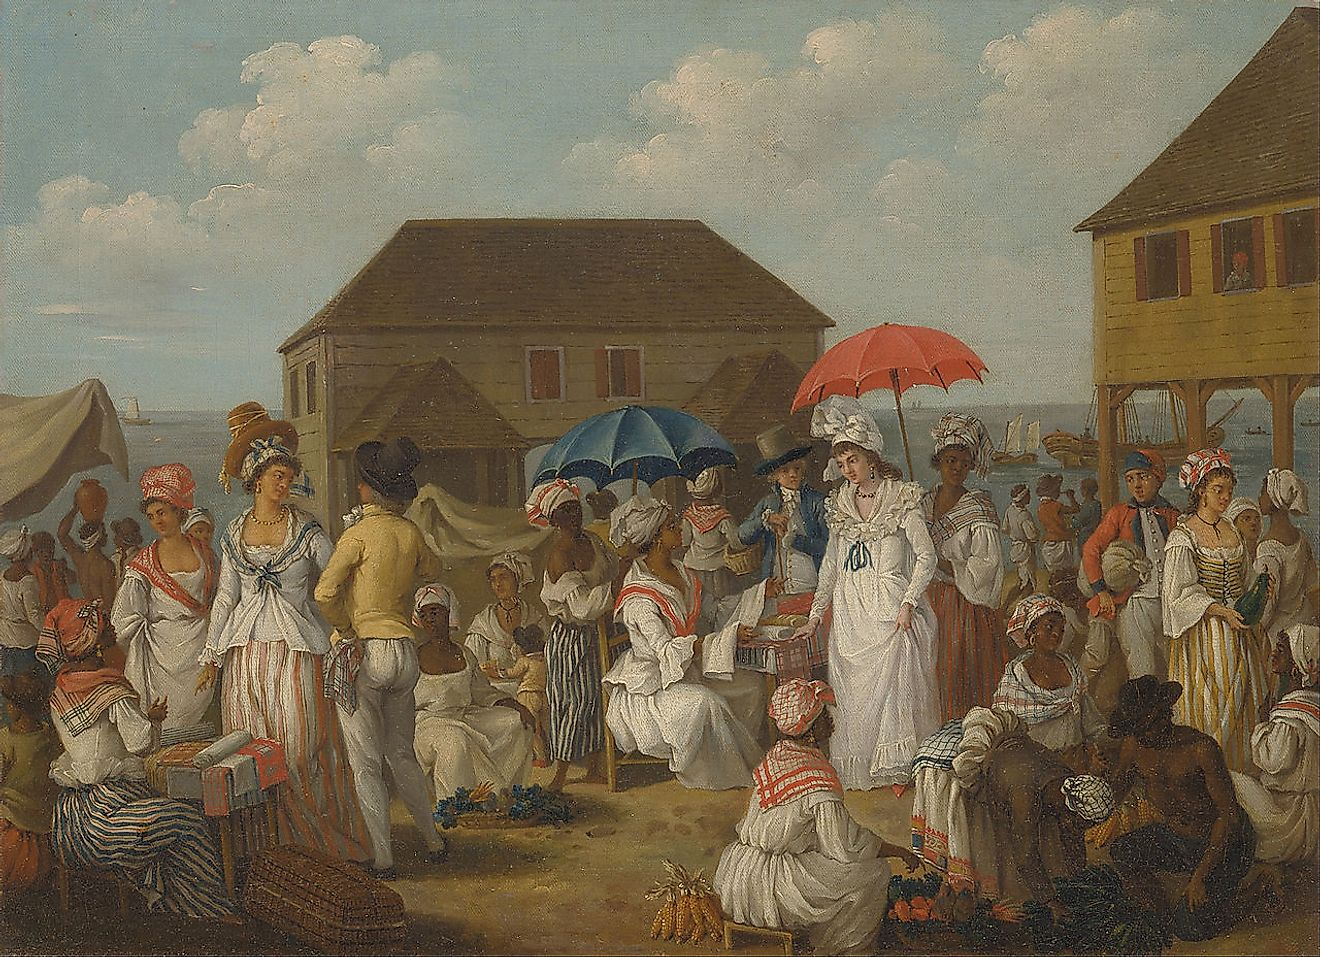 African slaves in a linen market in Dominica. Image credit: Yale Center for British Art/Public domain